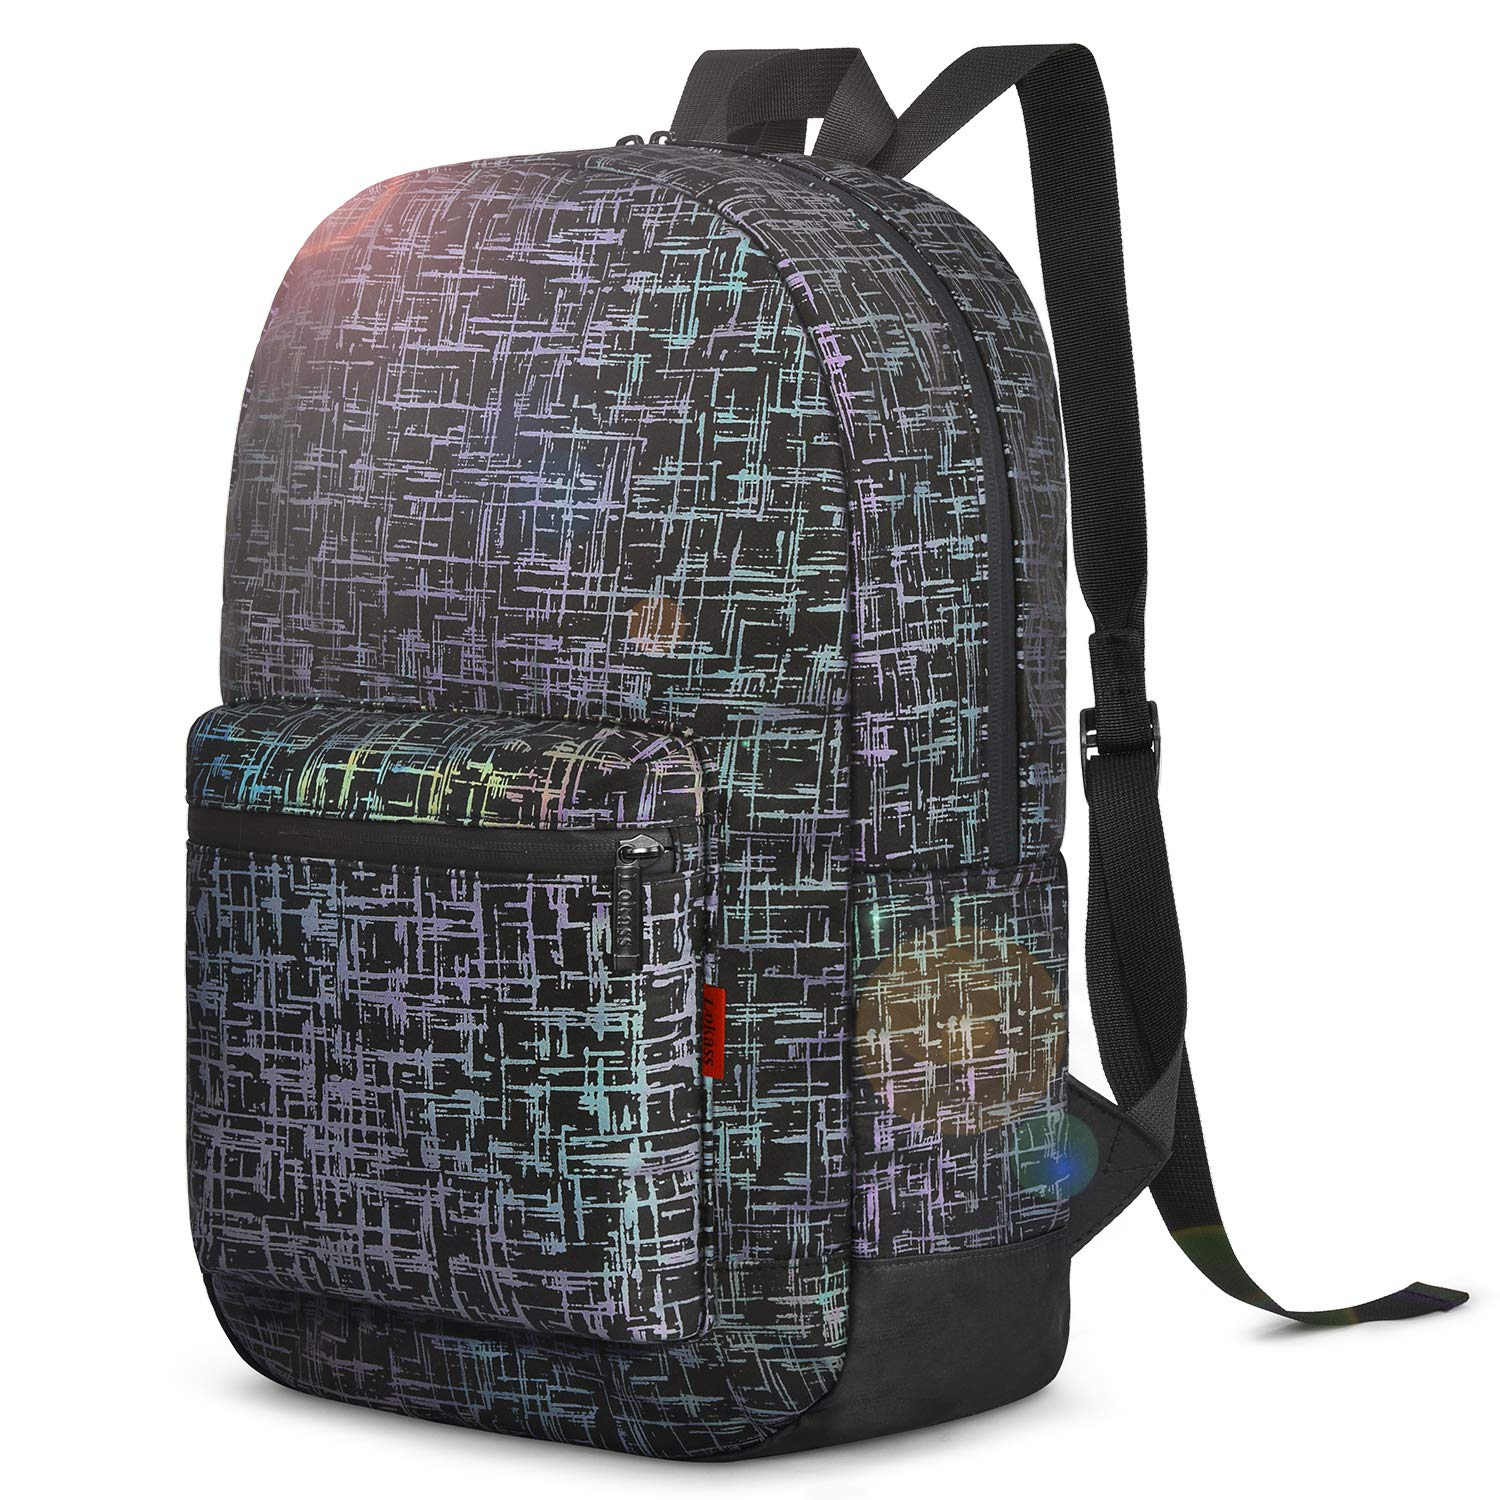 LOKASS Backpack Night Glowing Rainbow Hiking Backpack Lightweight Satchel Carry-On College Rucksack Bookbag for Women Wen Camping Cycling Commuting Travel Weekender,Reflective,Black